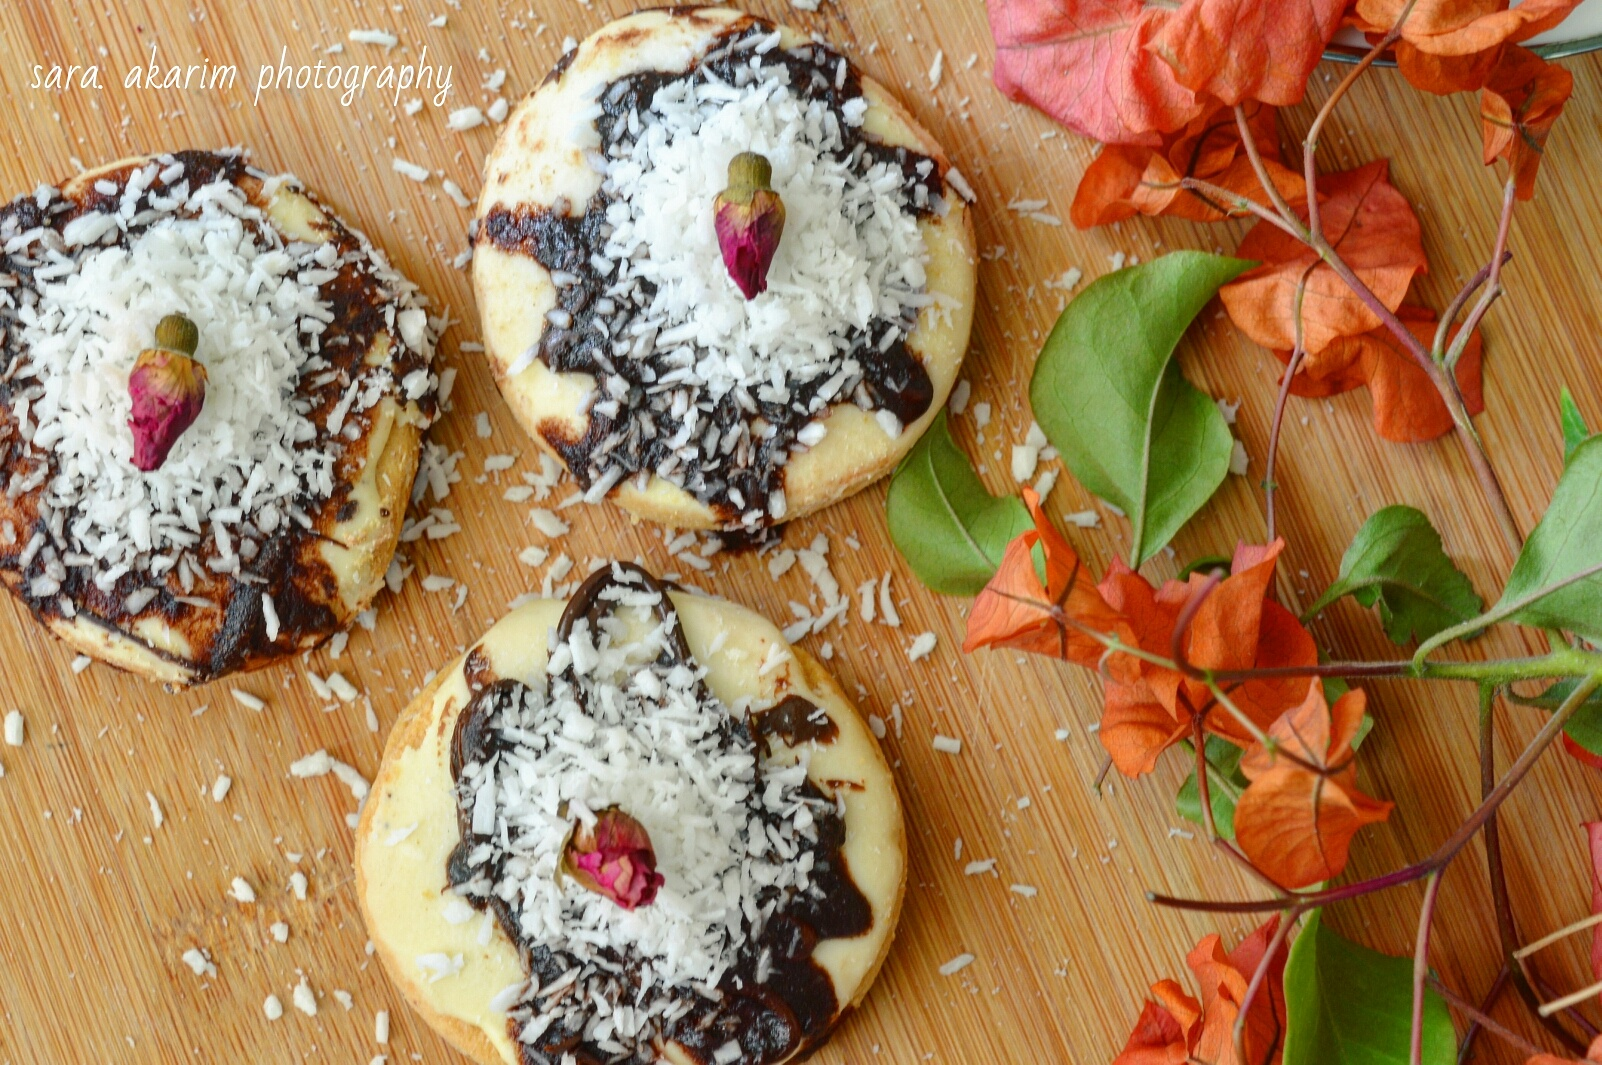 Biscuits with chocolate and coconut by Sara Abdelkarim